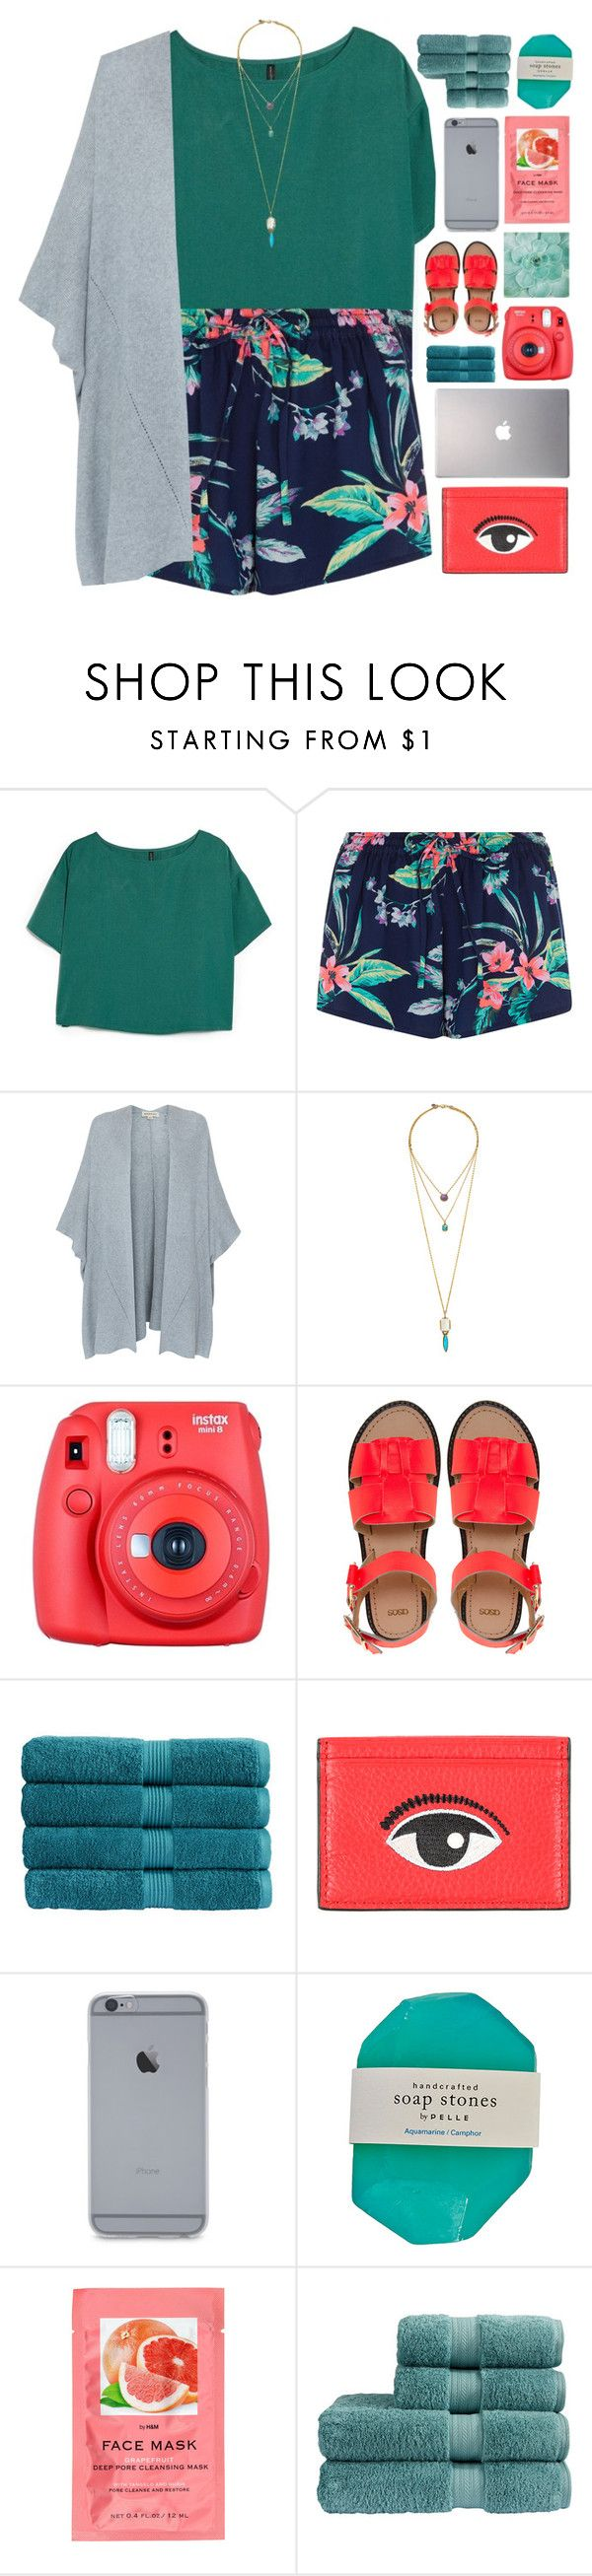 """""""HAWAII"""" by emmas-fashion-diary ❤ liked on Polyvore featuring MANGO, Repeat Cashmere, Fuji, ASOS, Christy, Kenzo, H&M and Samsung"""